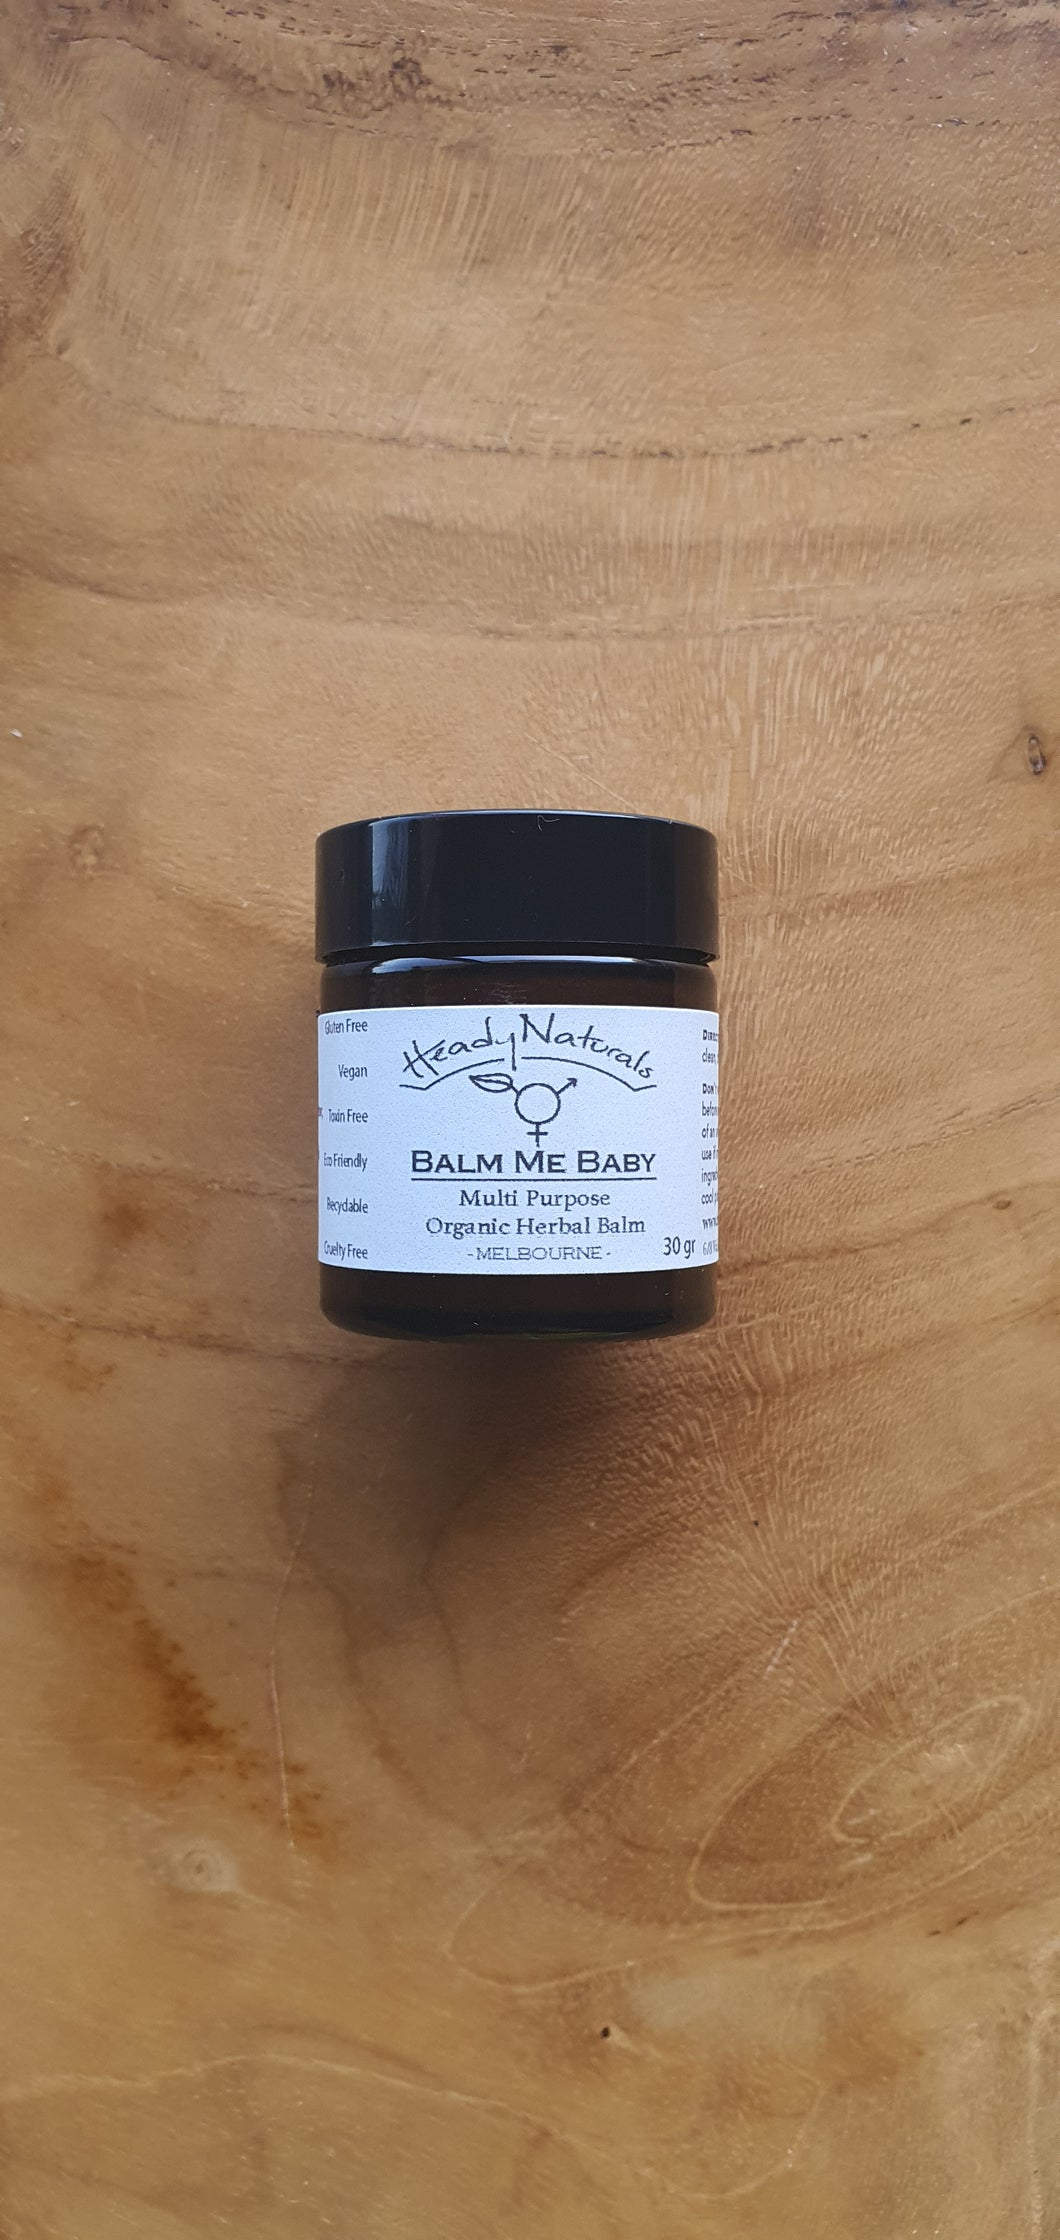 BALM ME BABY | Multi-Purpose Herbal Balm | 30g